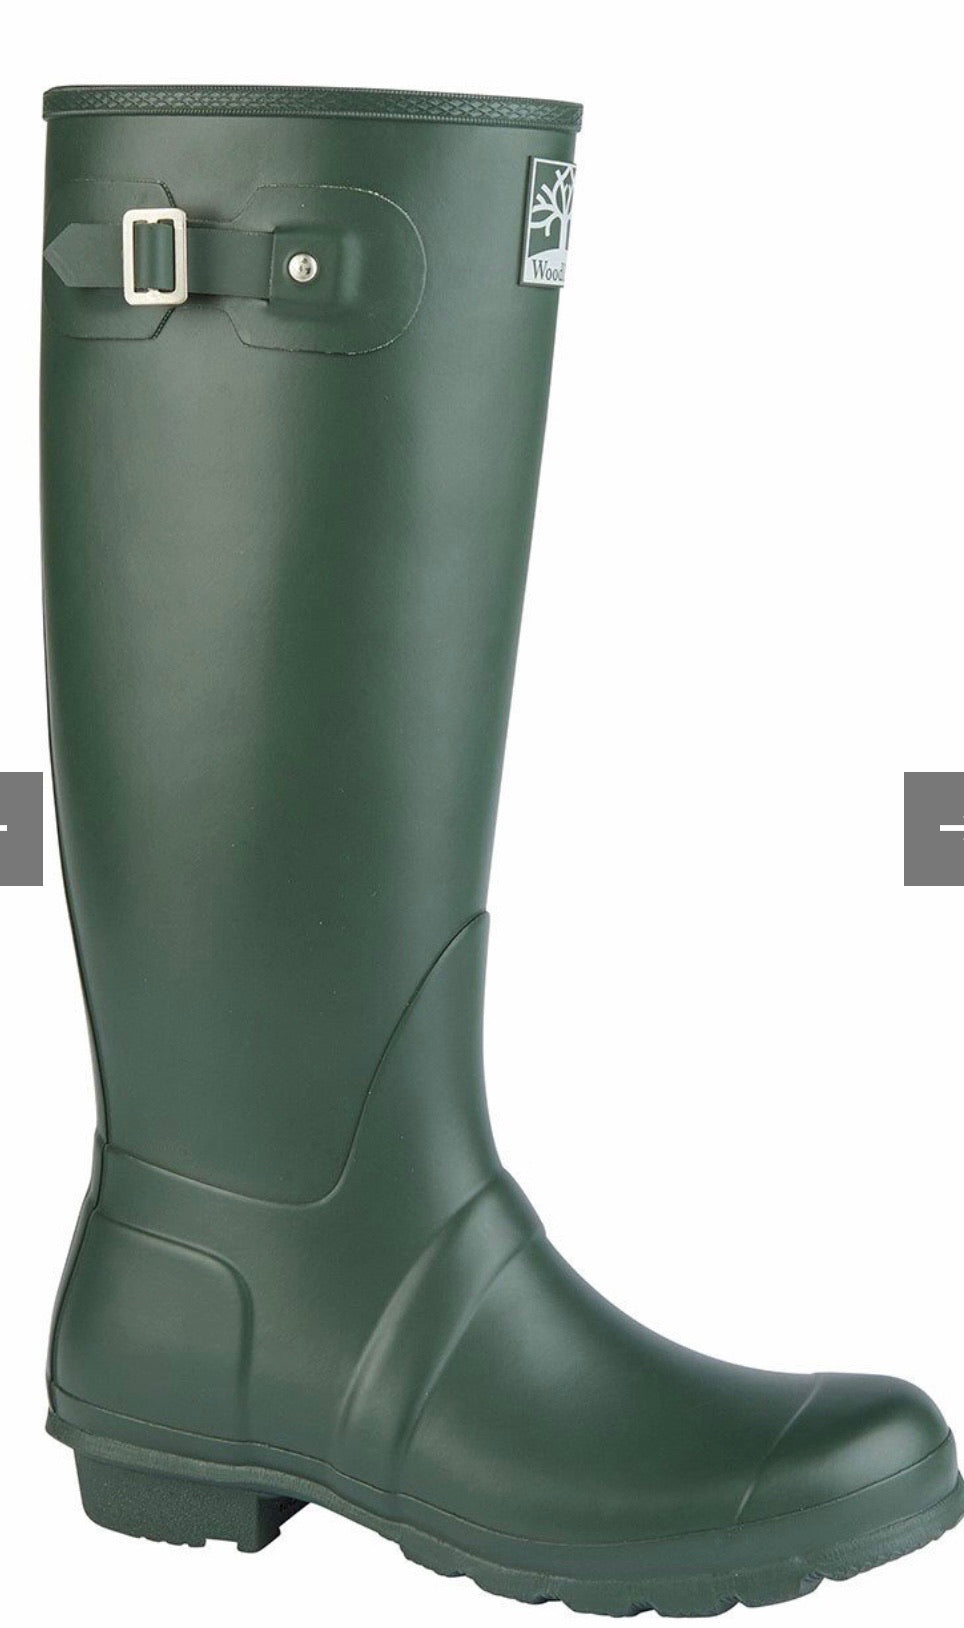 Woodland Regular Fitting Premium Quality Unisex Wellingtons in Green